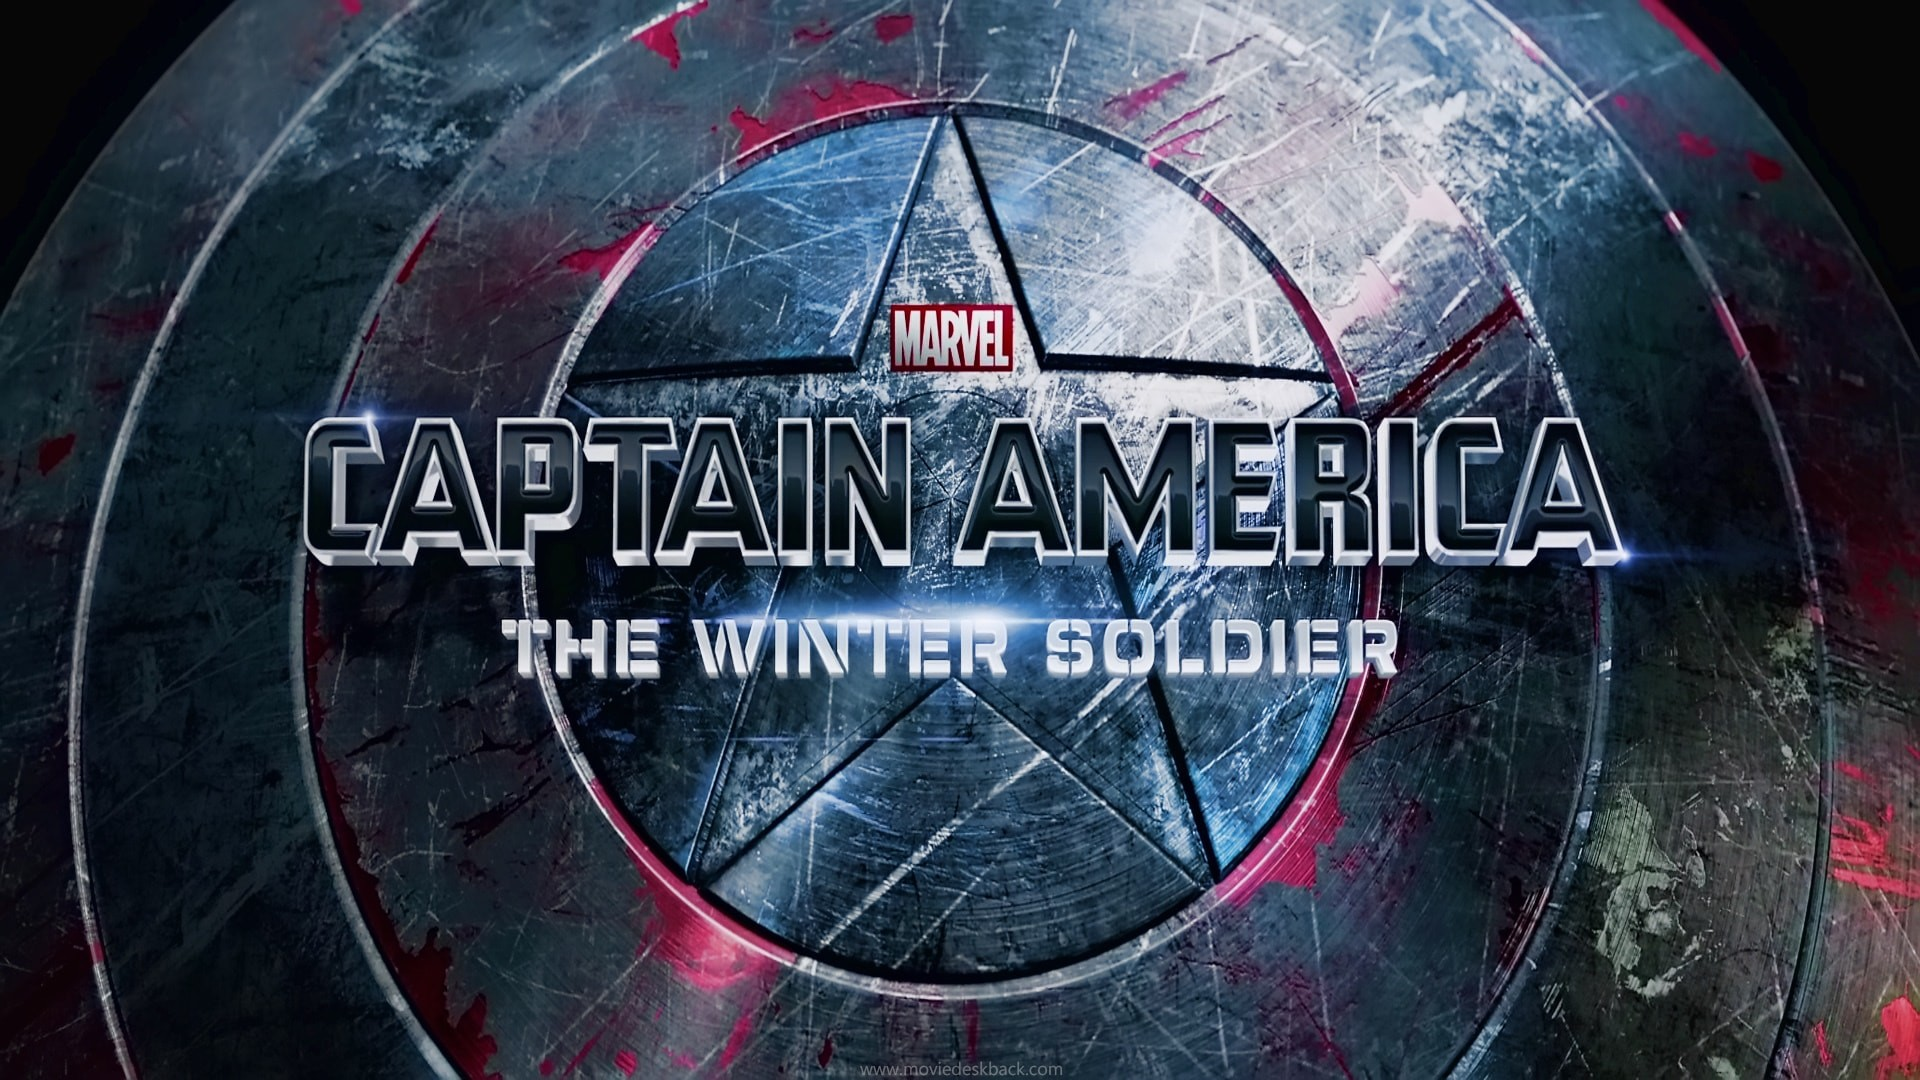 … wallpapers Captain America: The Winter Soldier Background